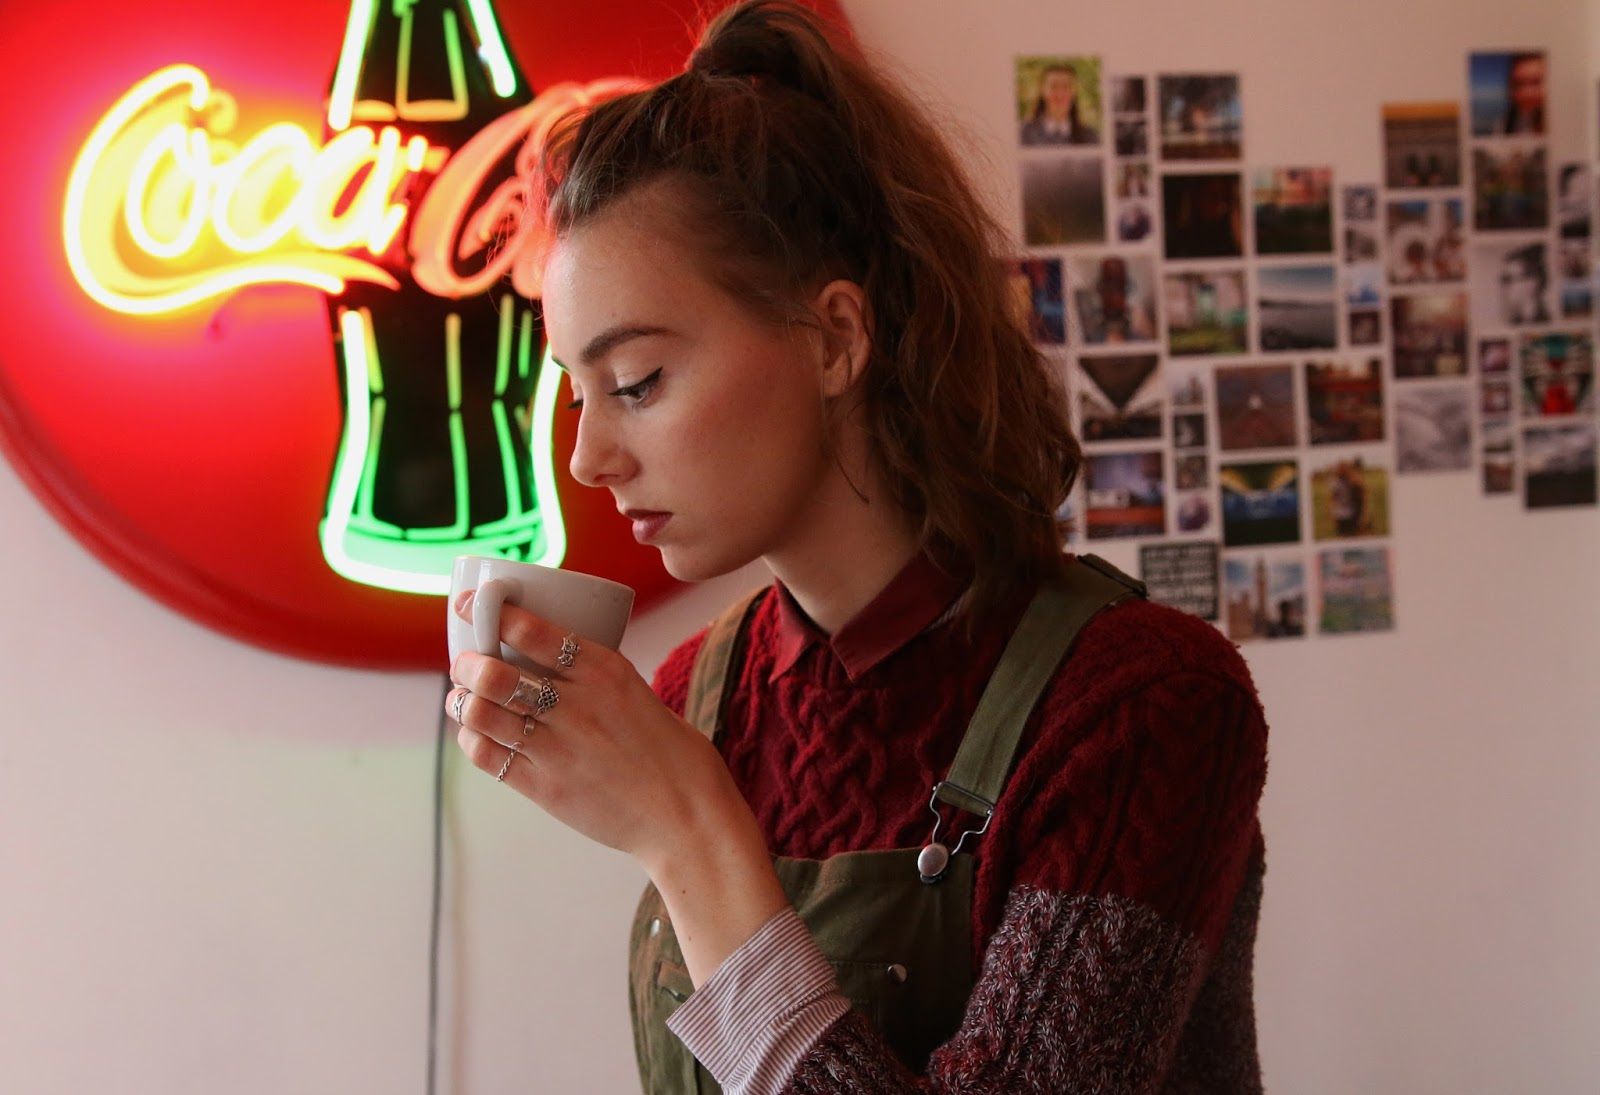 dungarees, overalls, green, ootd, blogger, mandeville sisters, sisters, fashion, british, grace mandeville, mandeville sisters, green overalls, green dungarees, asos, kooples shirt, winter jumper, shirt,